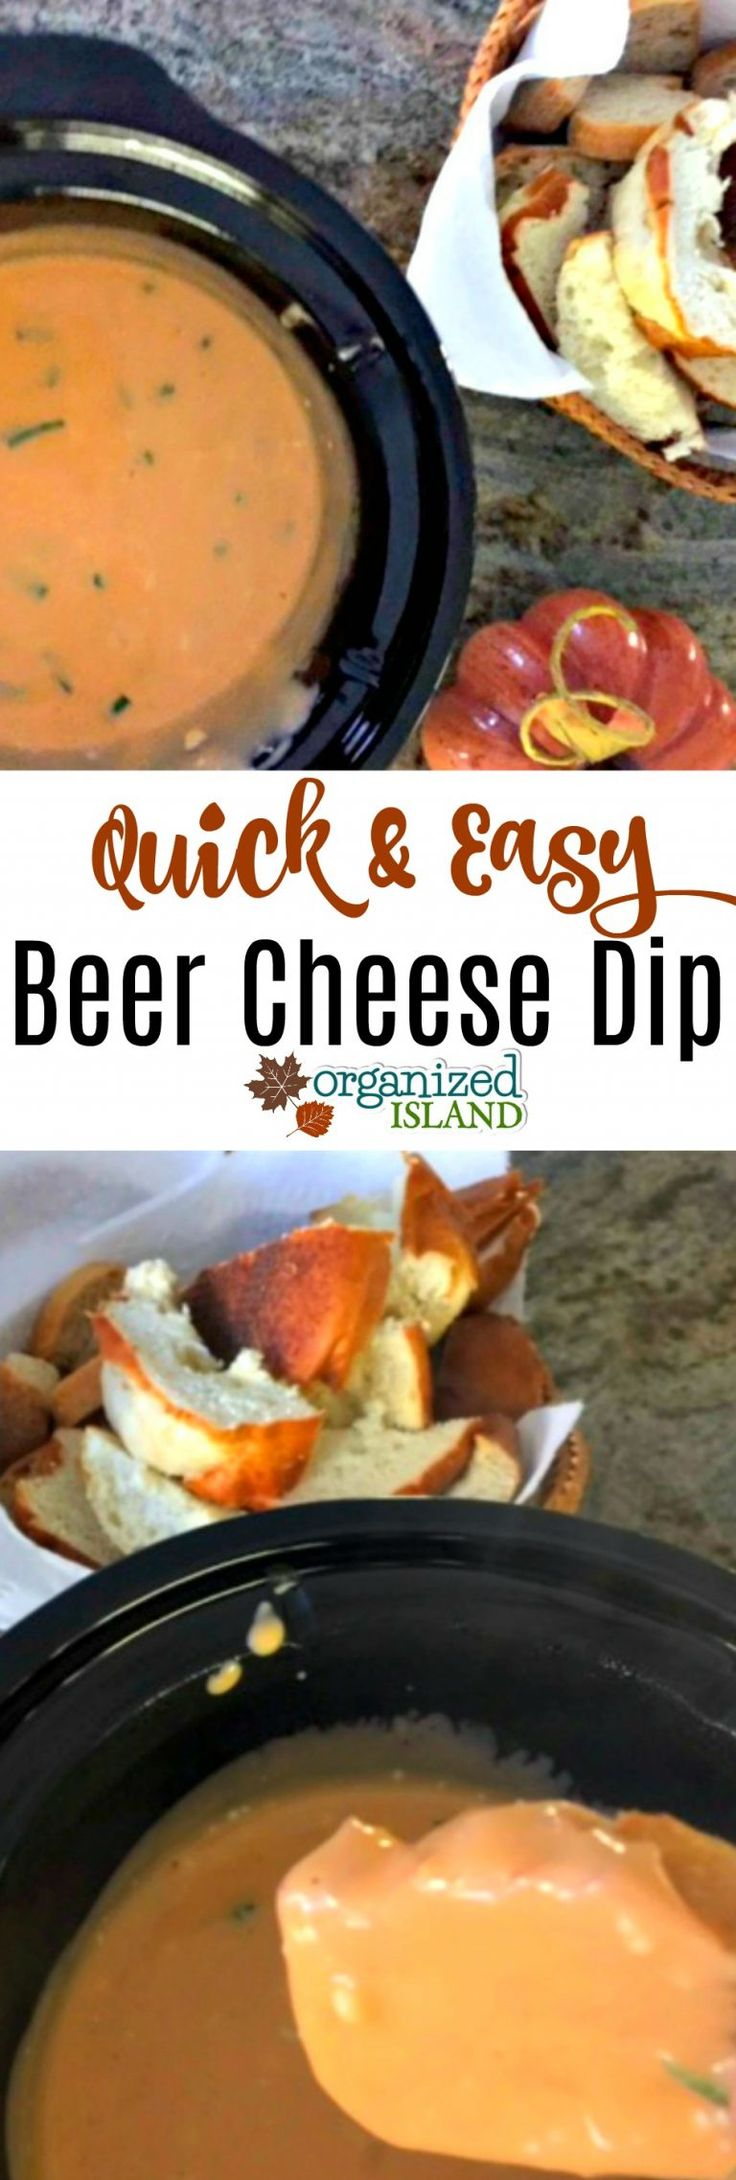 A tasty Beer Cheese Dip Recipe that is a perfect appetizer for game day or tailg…